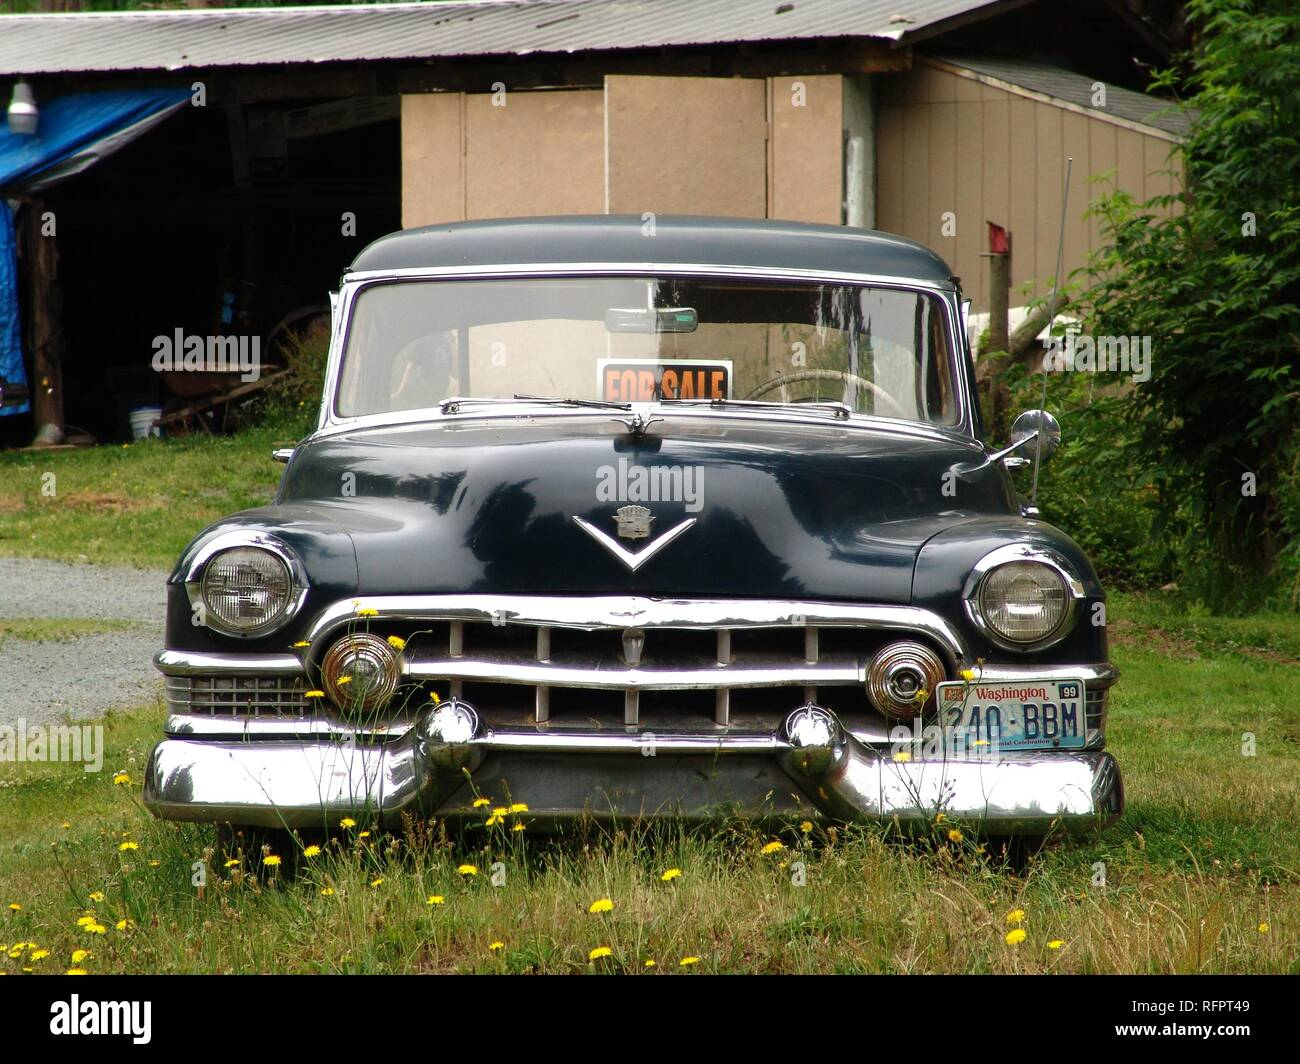 USA, United States of America : Old car for sale. Stock Photo